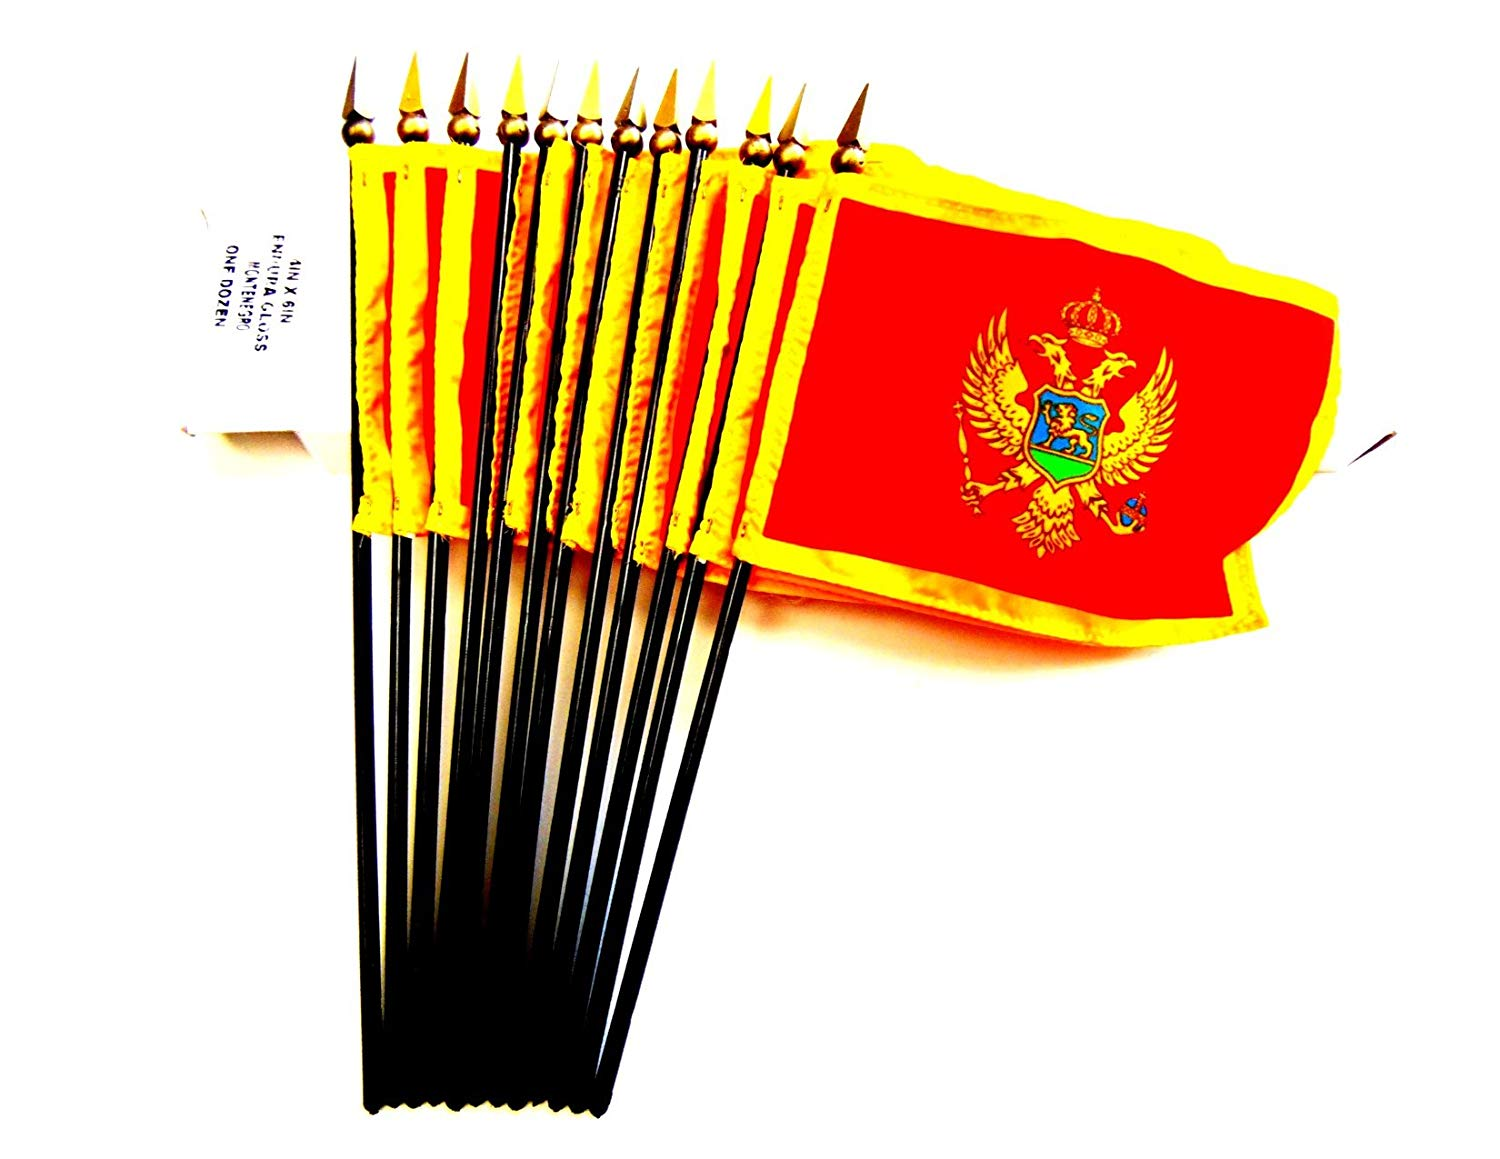 """Made in USA!! Box of 12 Montenegro 4""""x6"""" Miniature Desk & Little Table Flags; 12 Office and Waving Small Mini Montenegro Handheld Stick Flags in a Custom Made Cardboard Box Made for These Flags"""